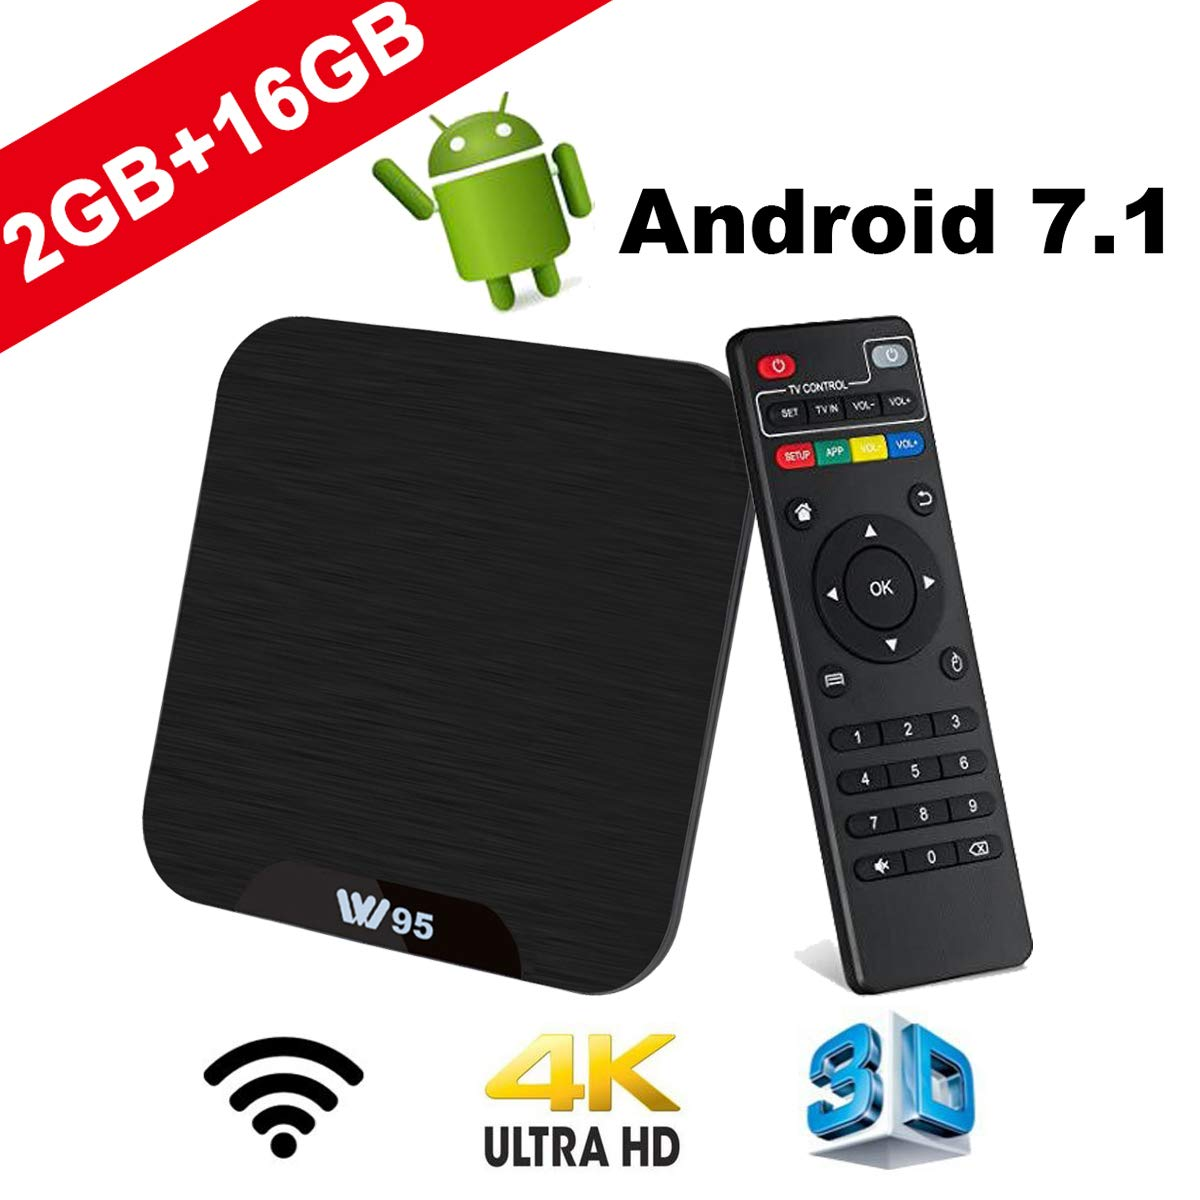 Android 7.1 Smart TV Box - Viden W95 Newest Android TV Box with Amlogic 64Bits Quad-Core, 2GB+16GB, Built-in Wi-Fi, HDMI Output, USB*2, 4K UHD Web TV Box